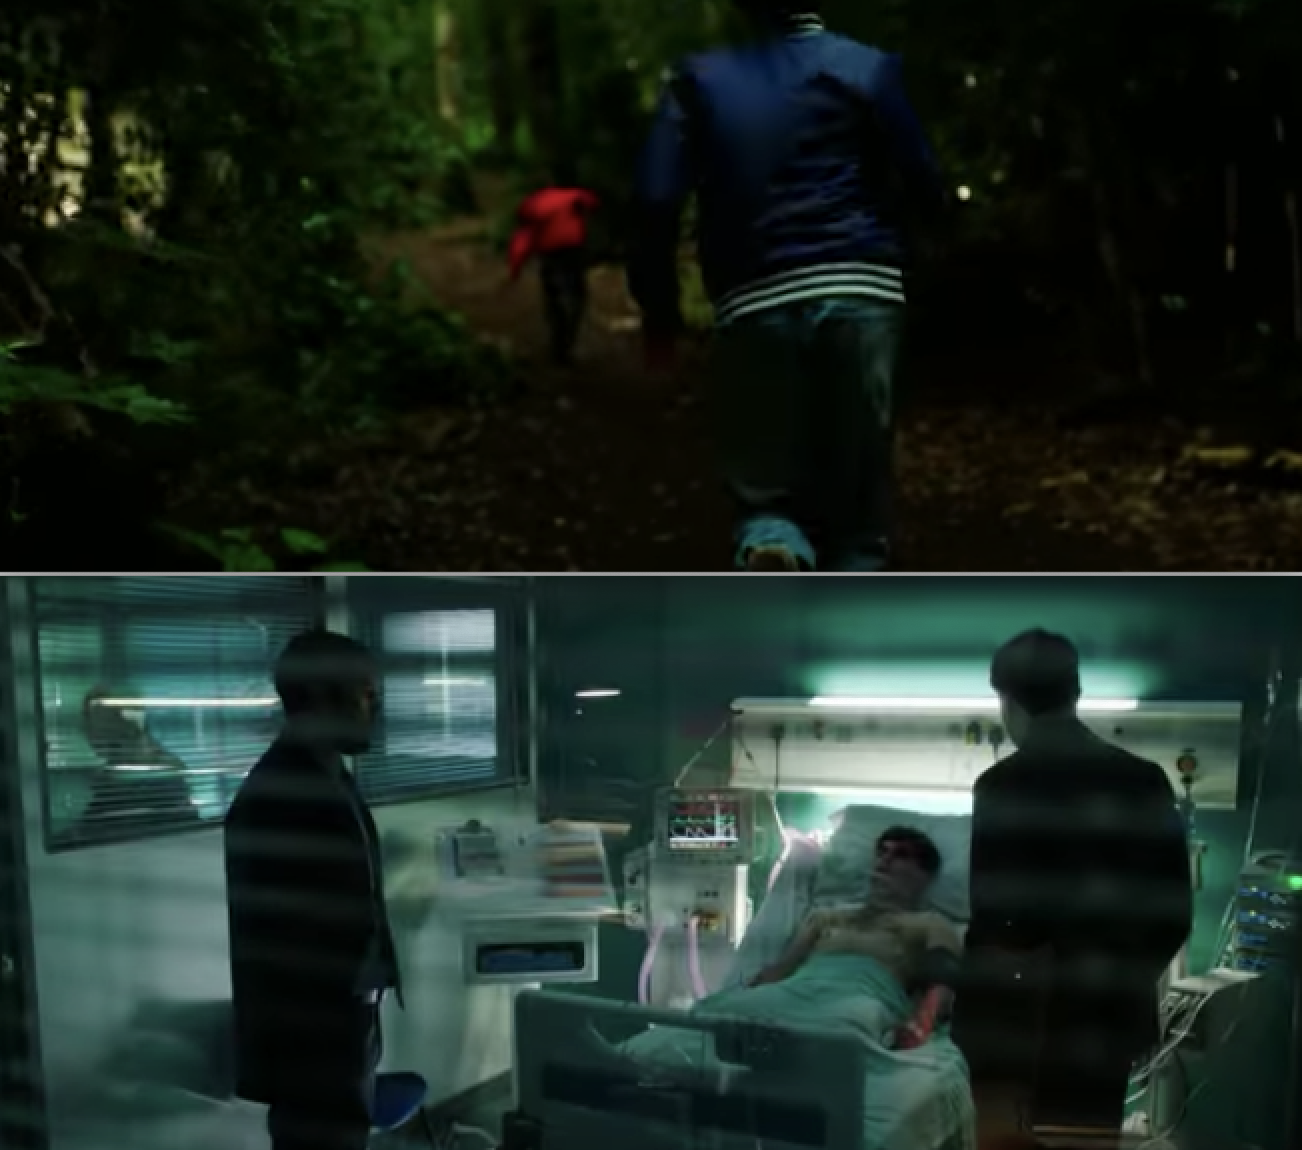 A side-by-side of kids running in the woods and someone lying in a hospital bed